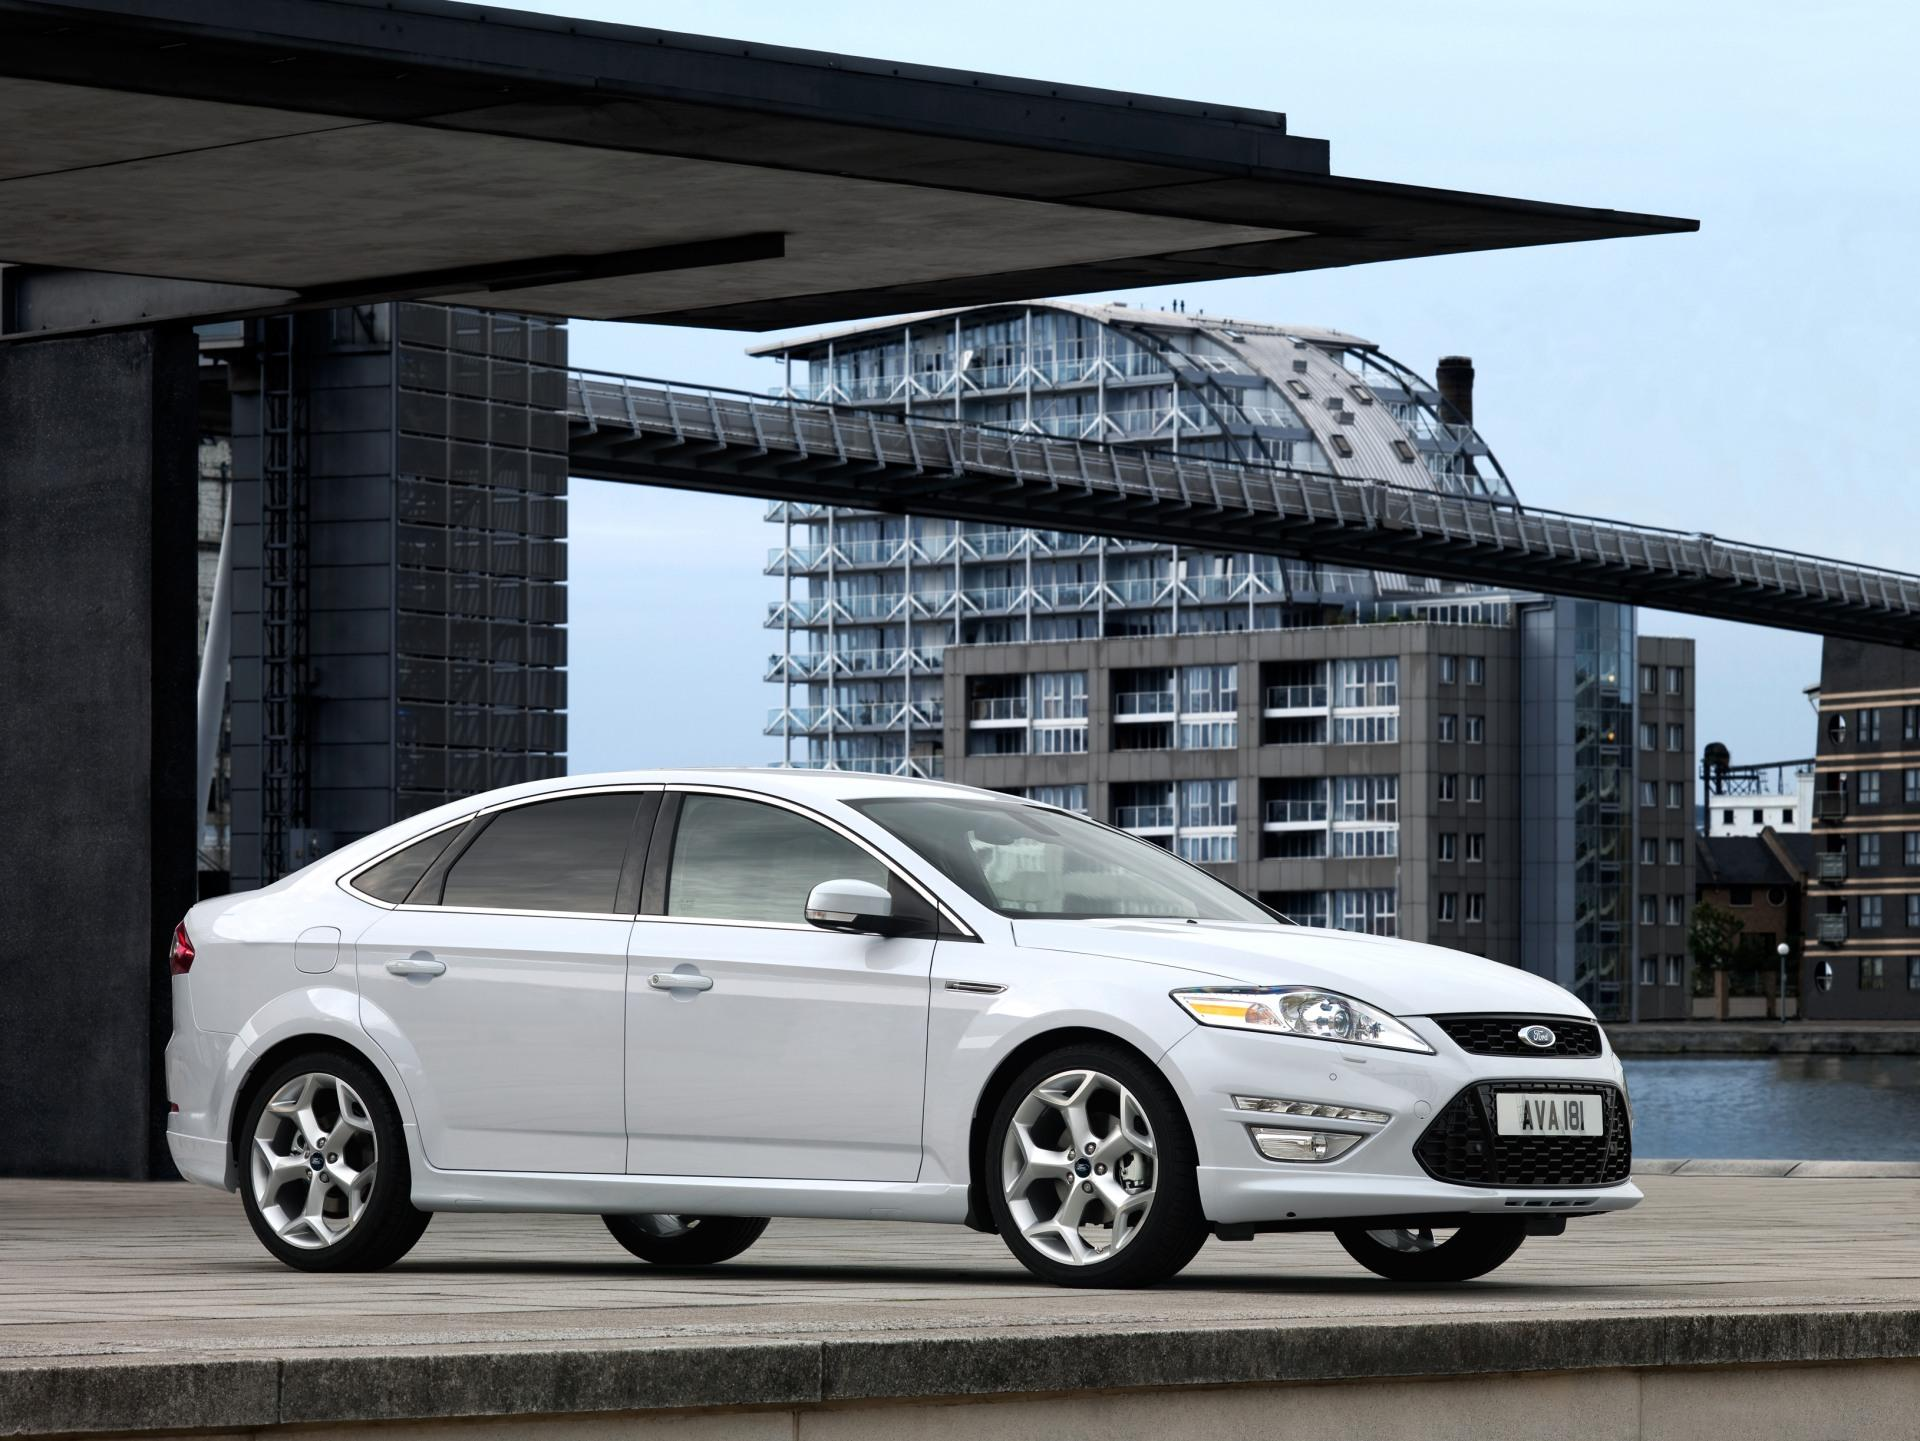 2011 Ford Mondeo News And Information Fusion Engine Compartment Diagram